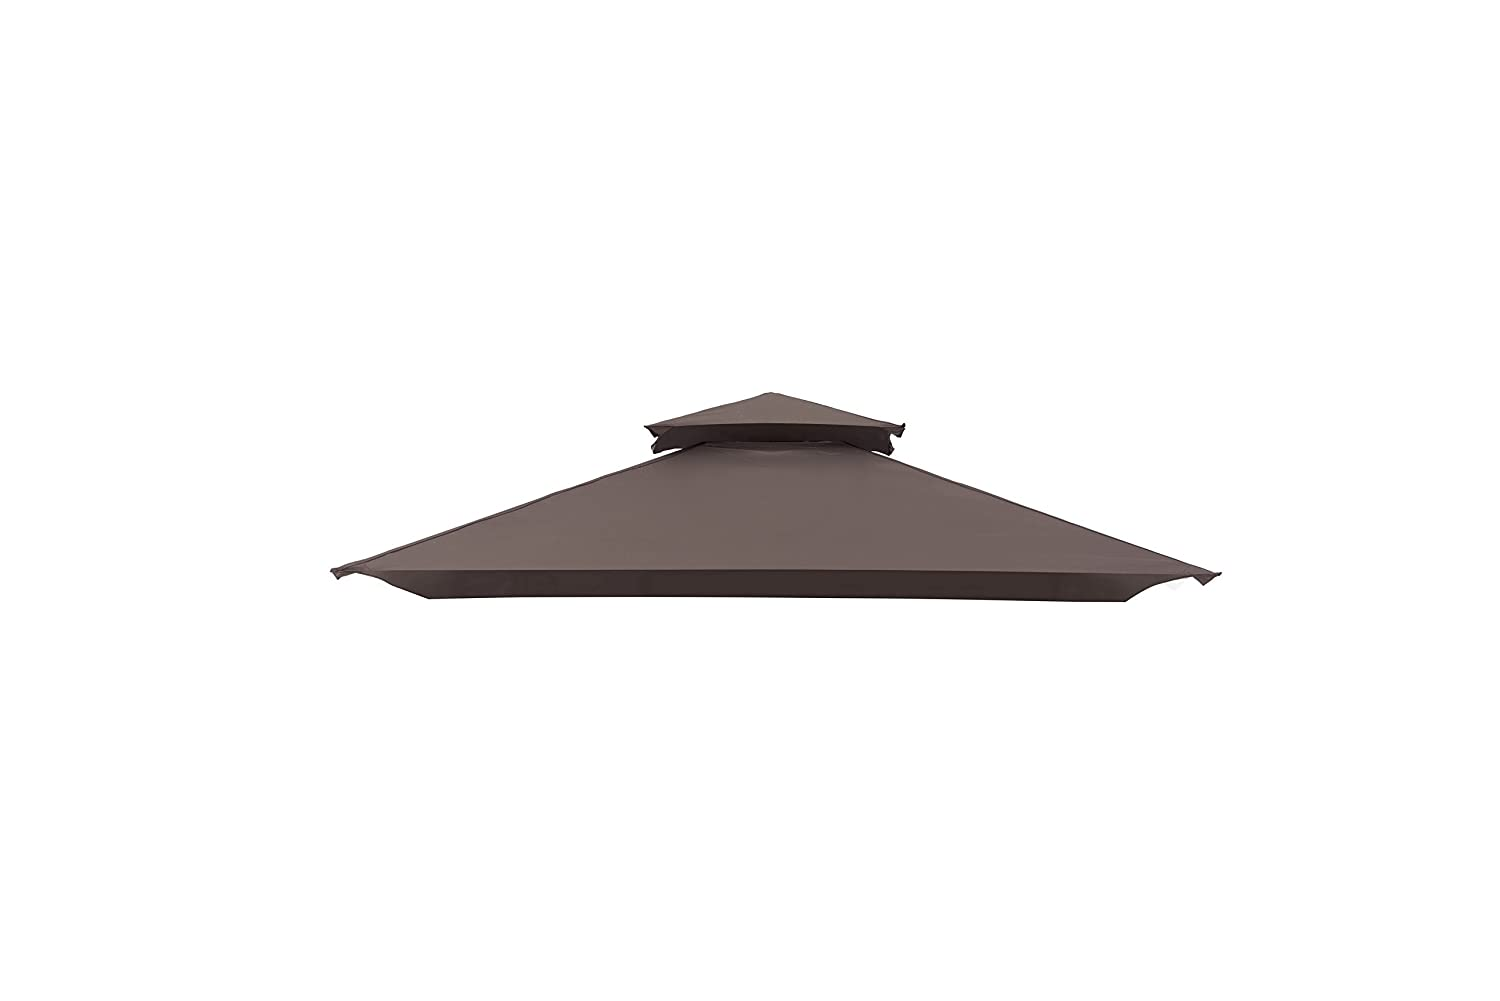 Sunjoy L-GG001PST-F-PK Replacement Canopy, Brown Sunjoy Group